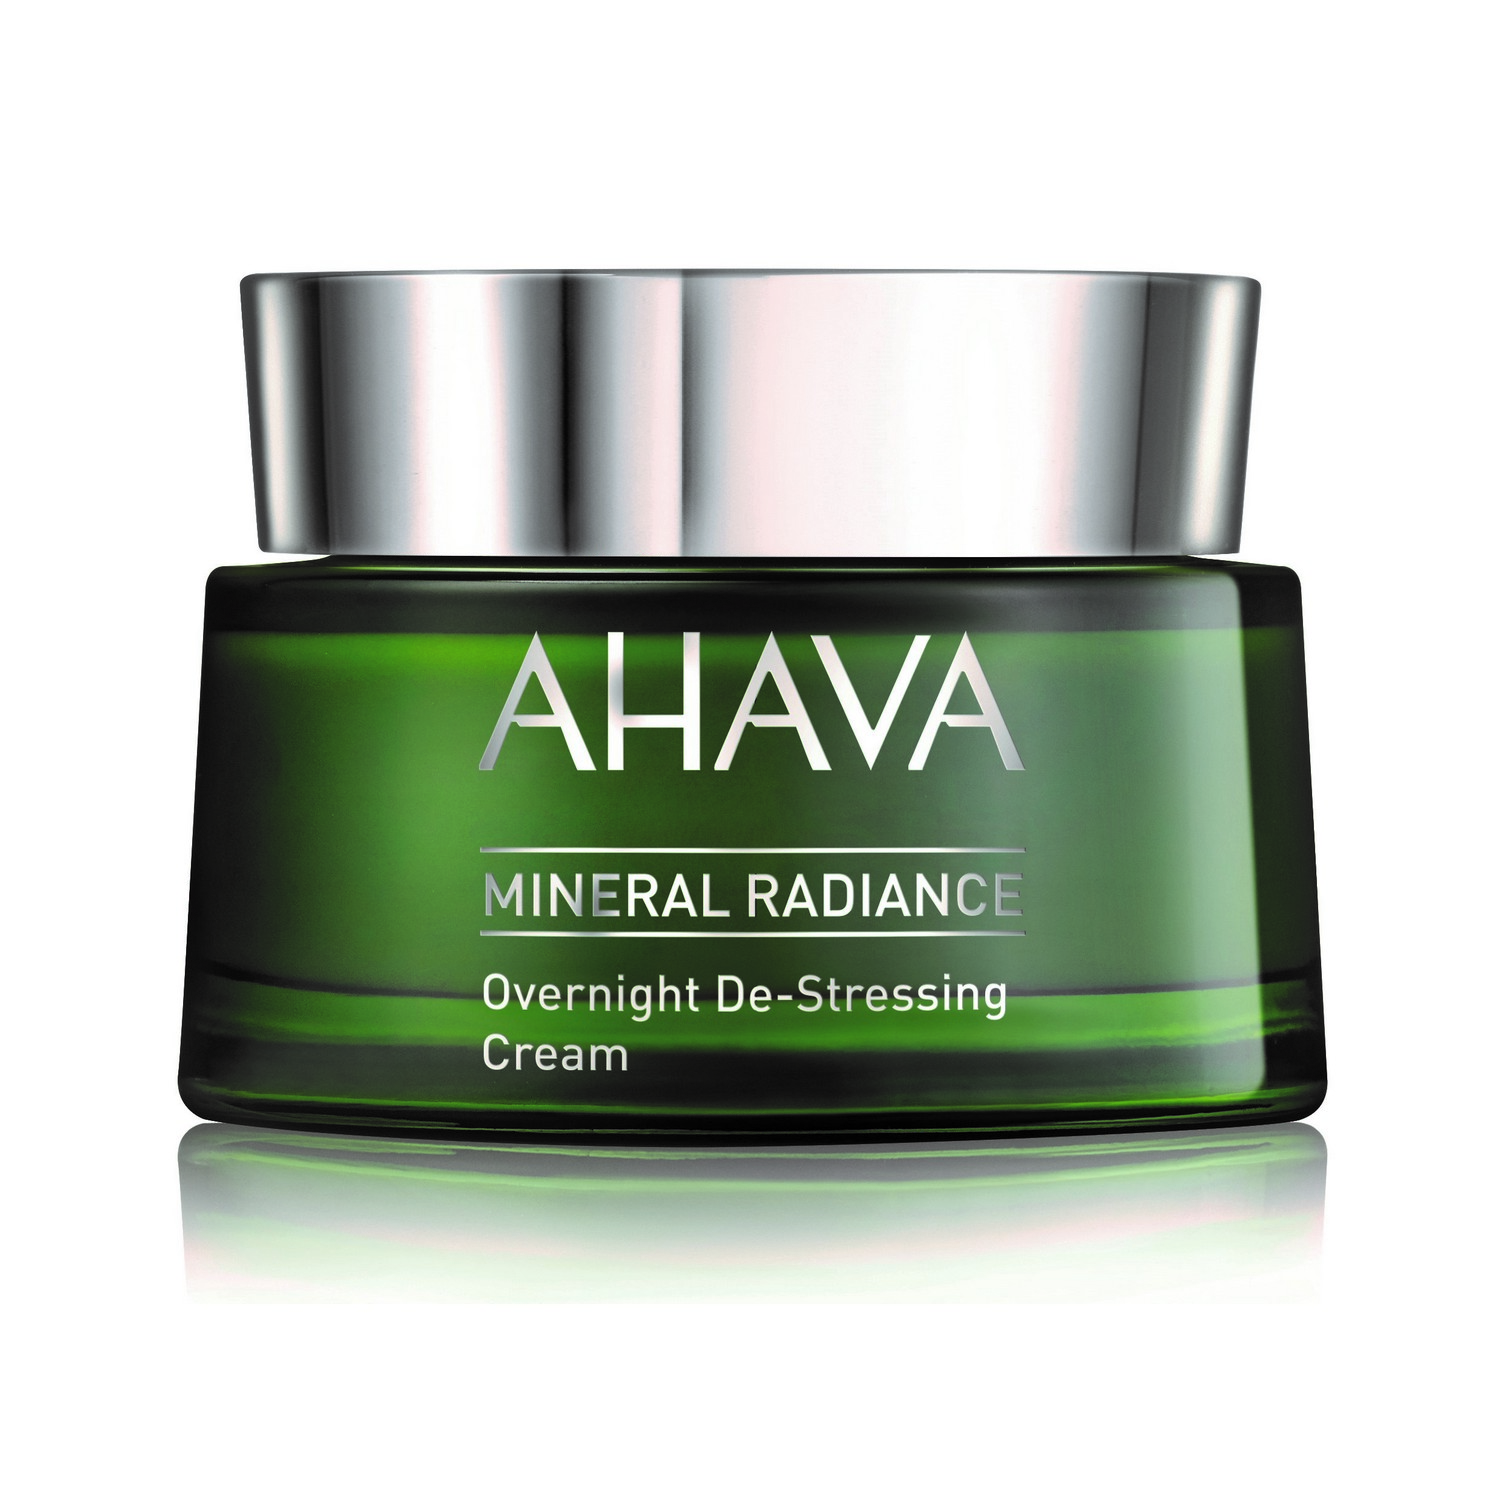 AHAVA MINERAL RADIANCE Overnight De-Stressing Cream (50 ml / 1.7 fl oz)